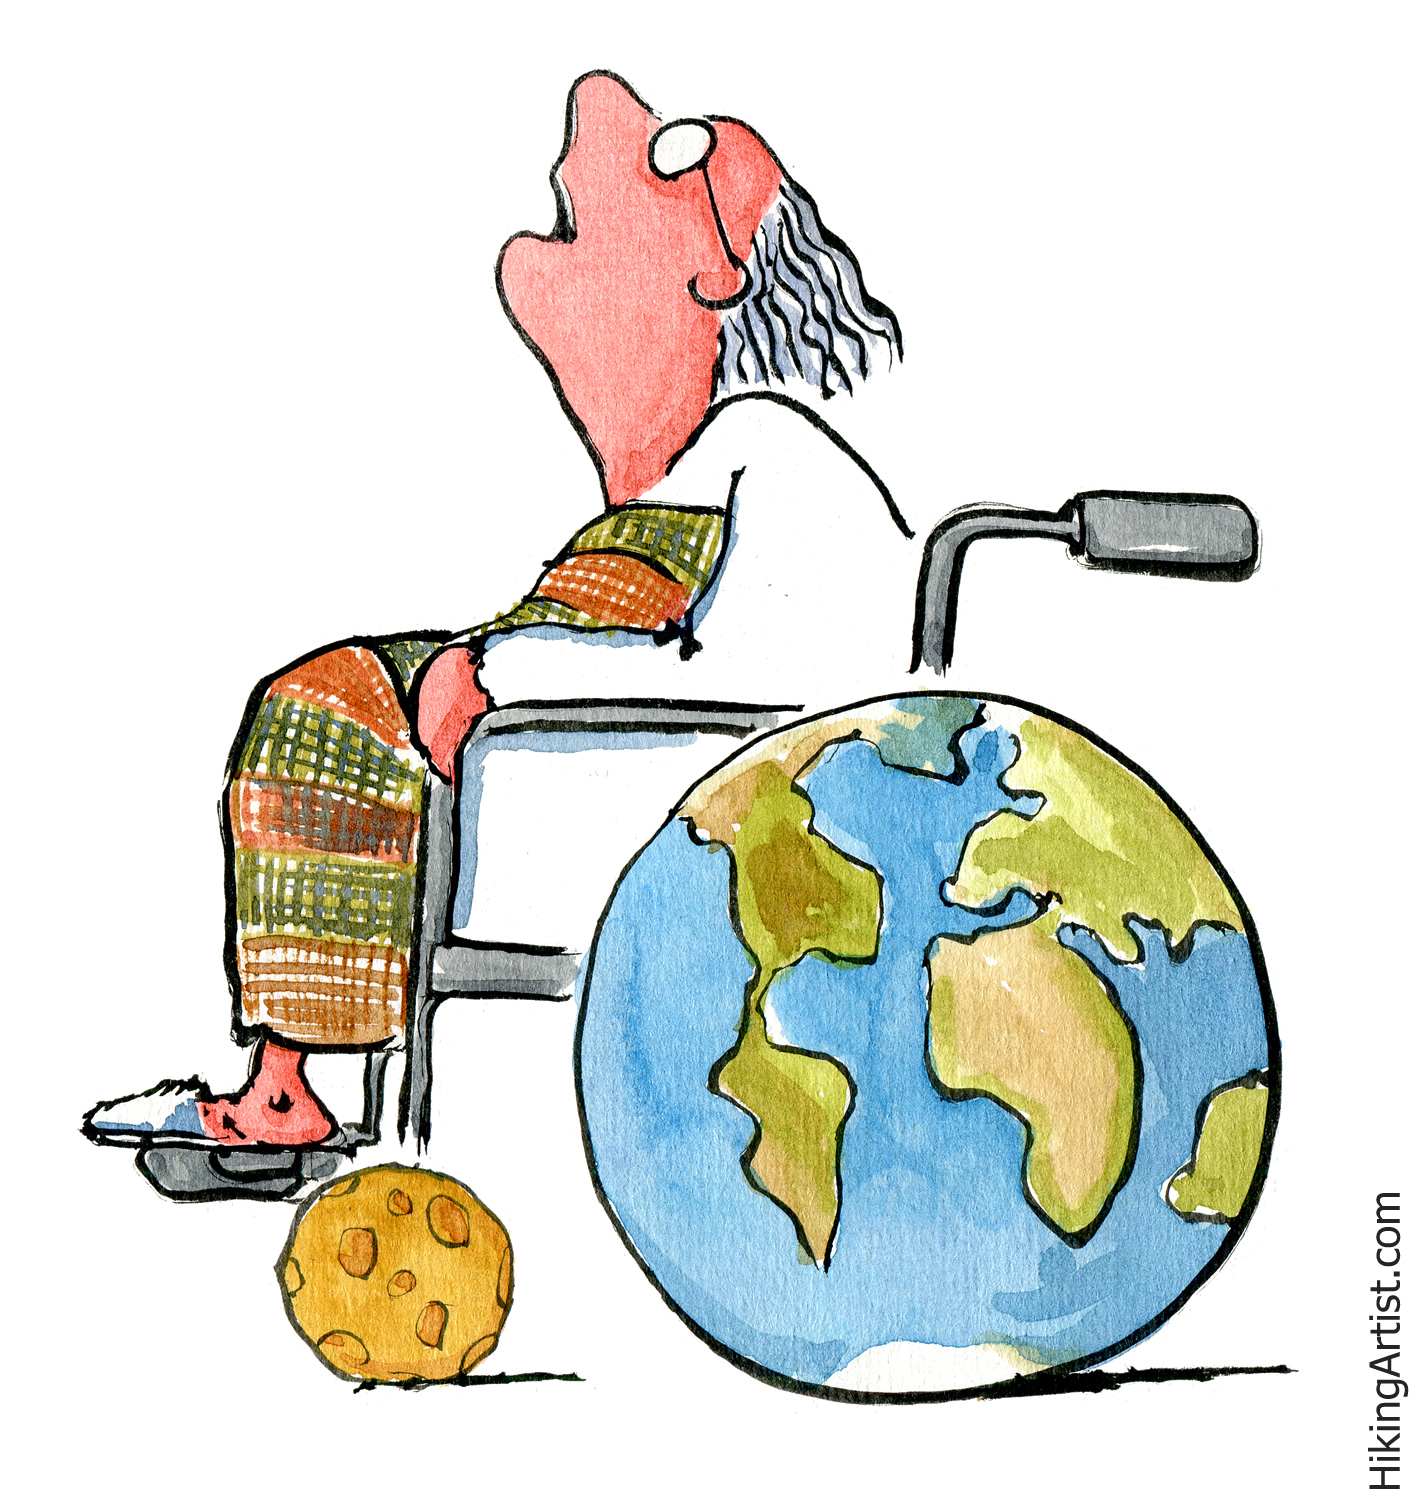 https://hikingartist.files.wordpress.com/2013/03/illustration-man-earth-wheelchair-old.jpg